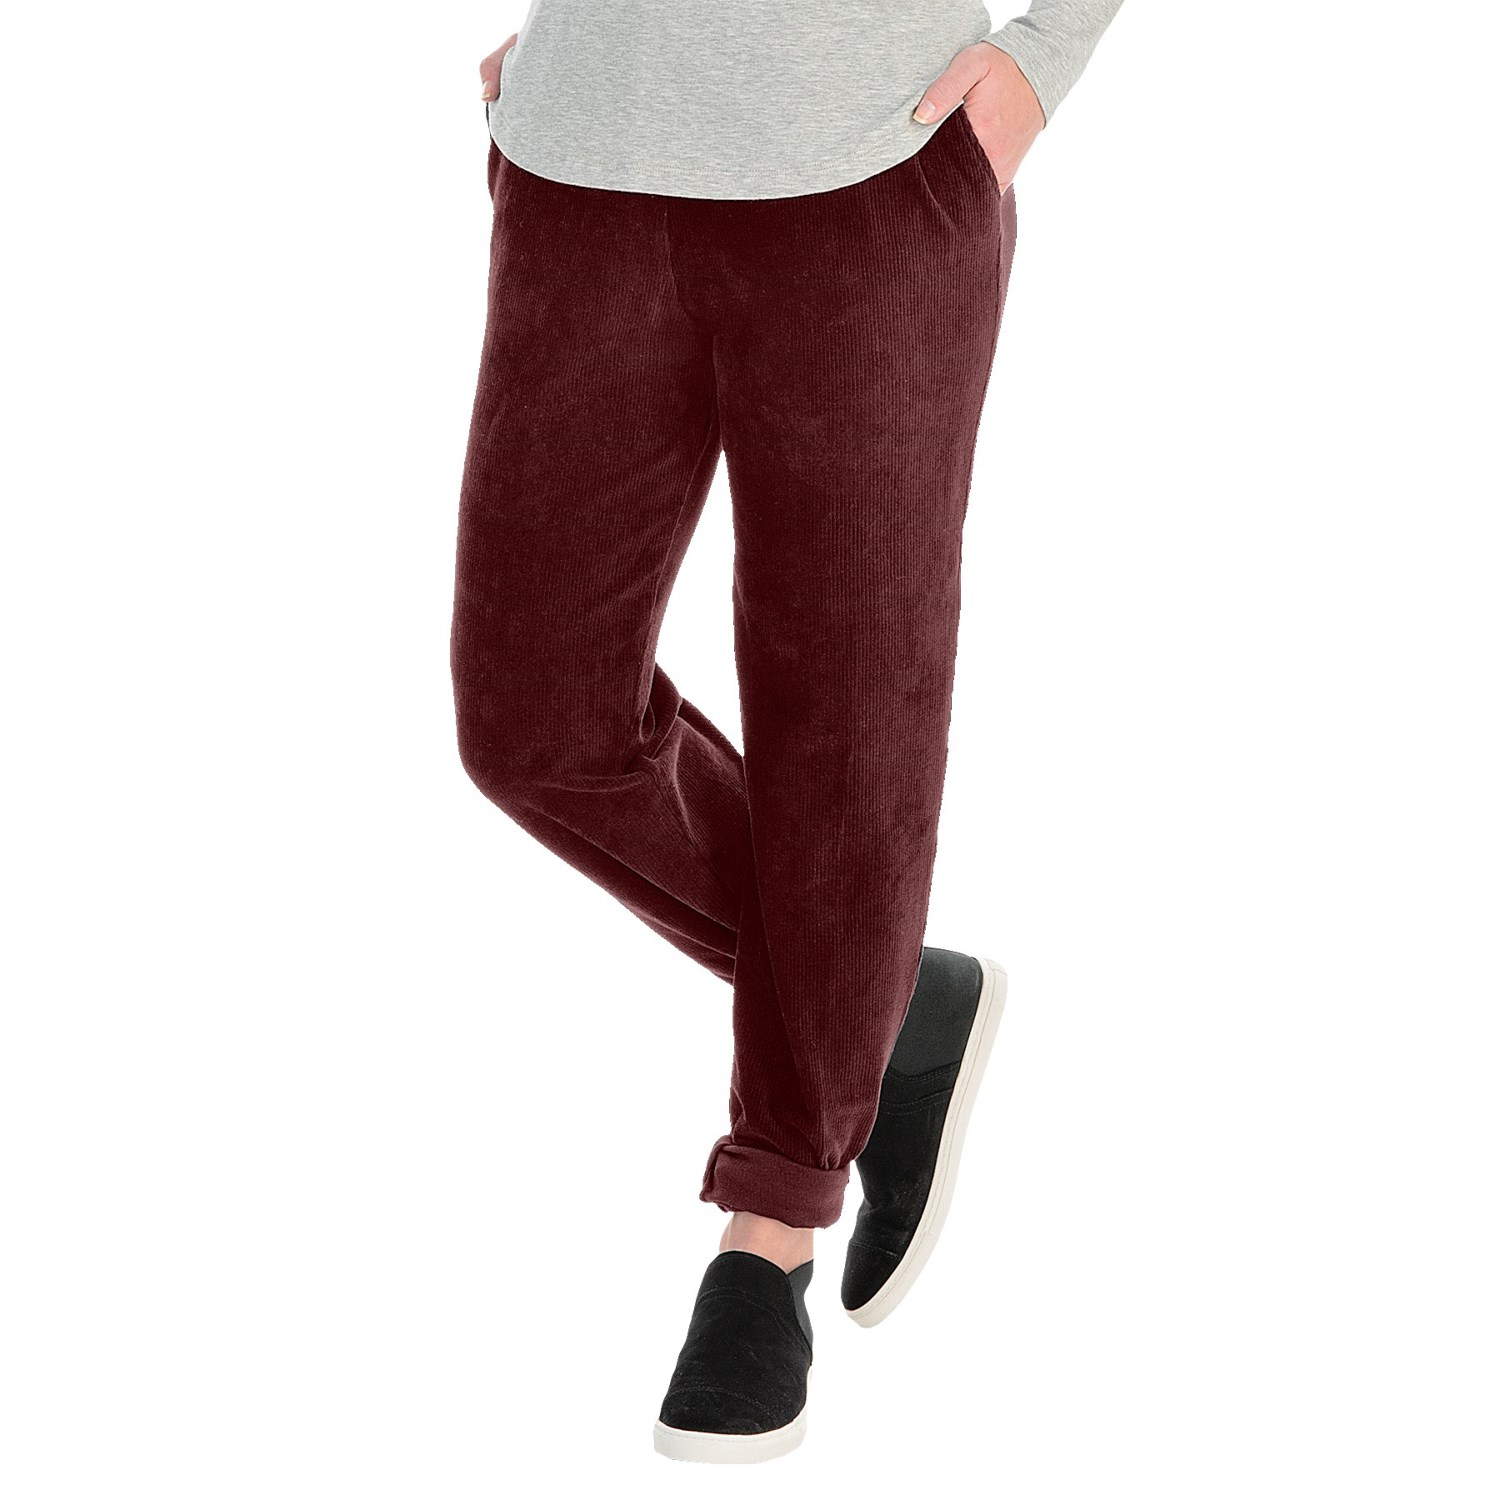 Sport Knit Corduroy Pants (For Women) - Save 76%